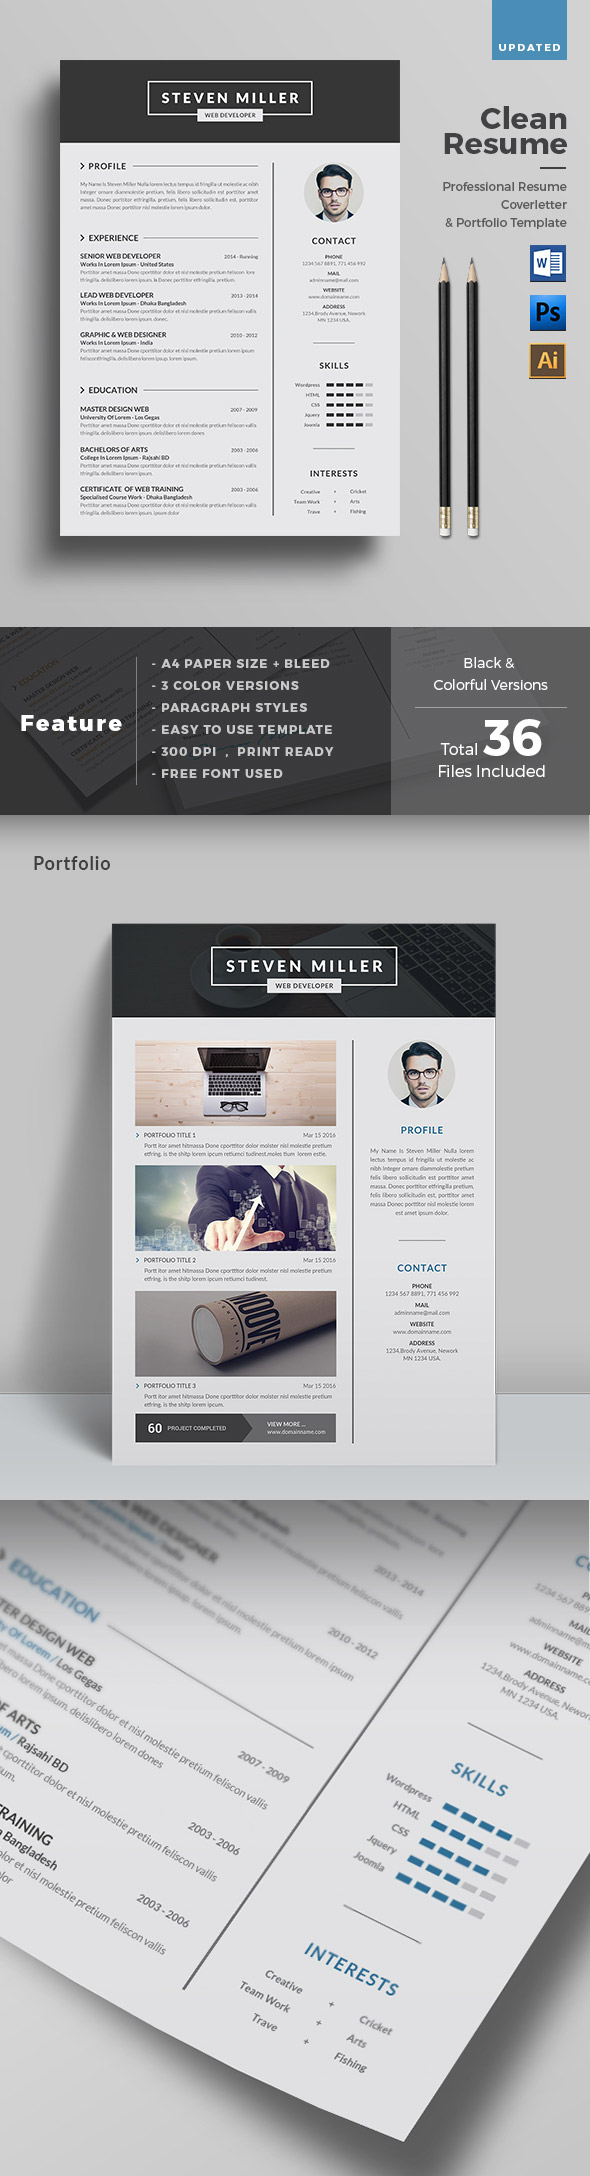 creative dynamic resume cv templates for professional jobs in free servicenow pattern Resume Free Dynamic Resume Templates